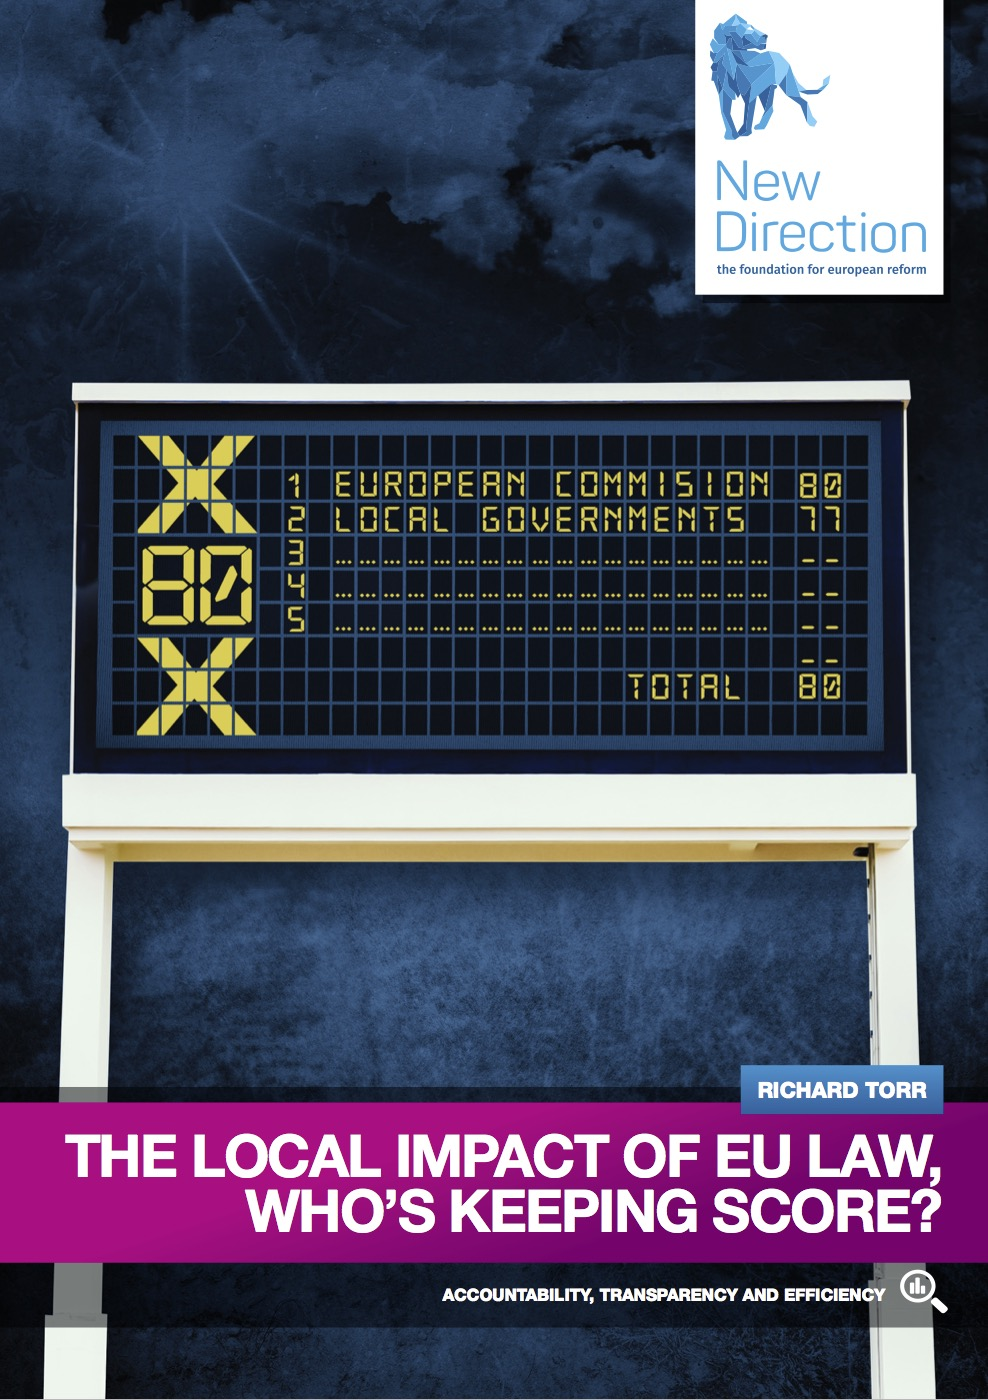 The Local Impact of EU Law, Who's Keeping Score?